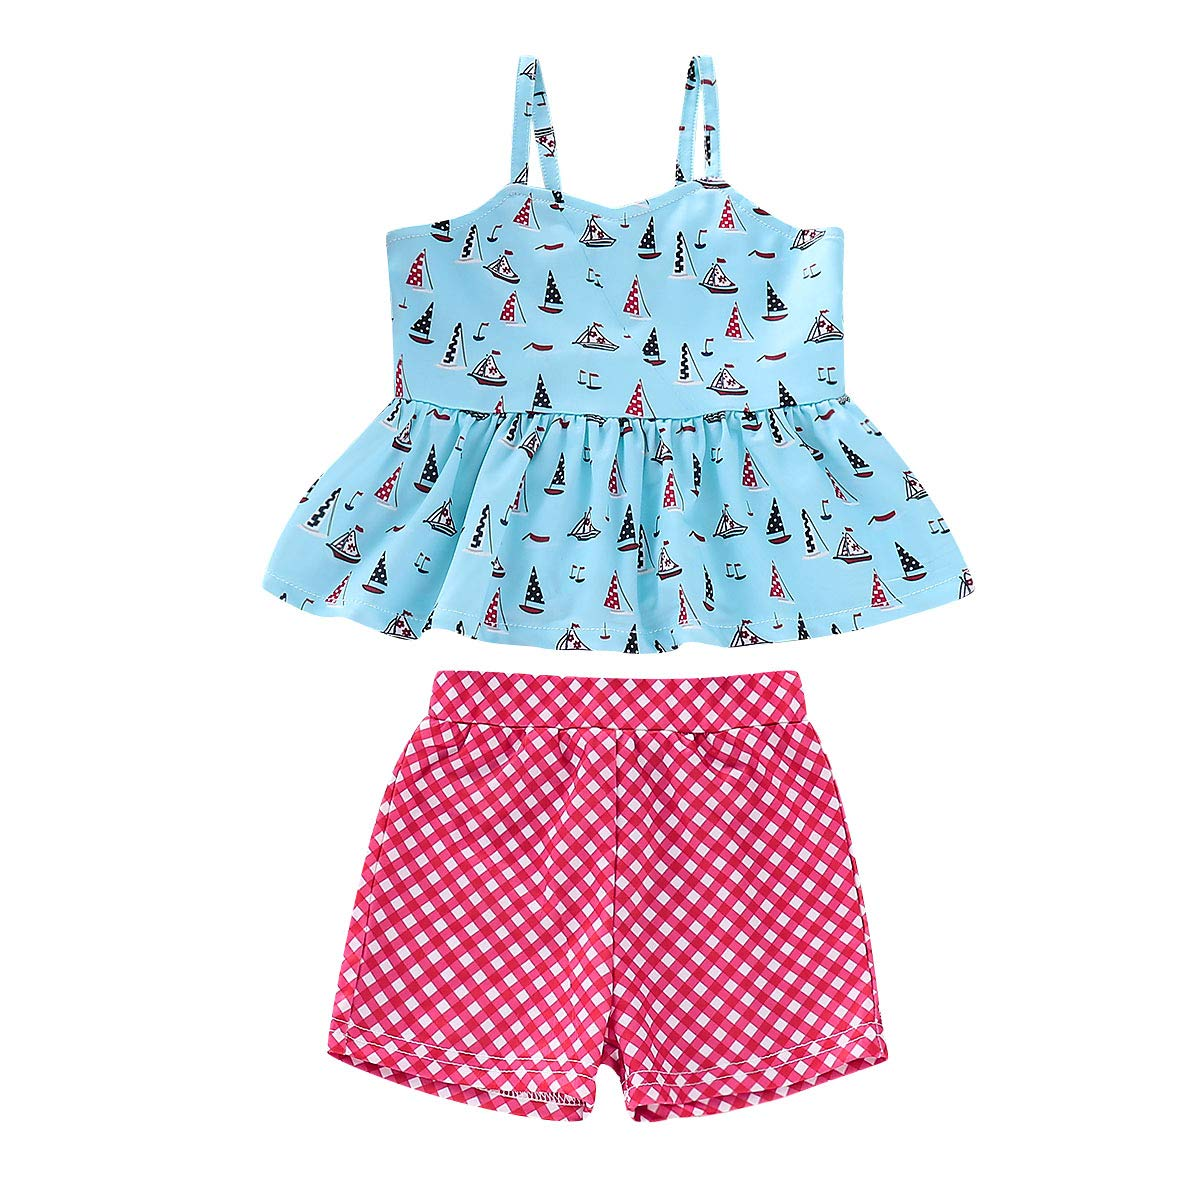 ZOMUSAR Toddler Baby Kids Girls Outfits Ruffle Fashion Tops+Checked Legging Two Piece Set